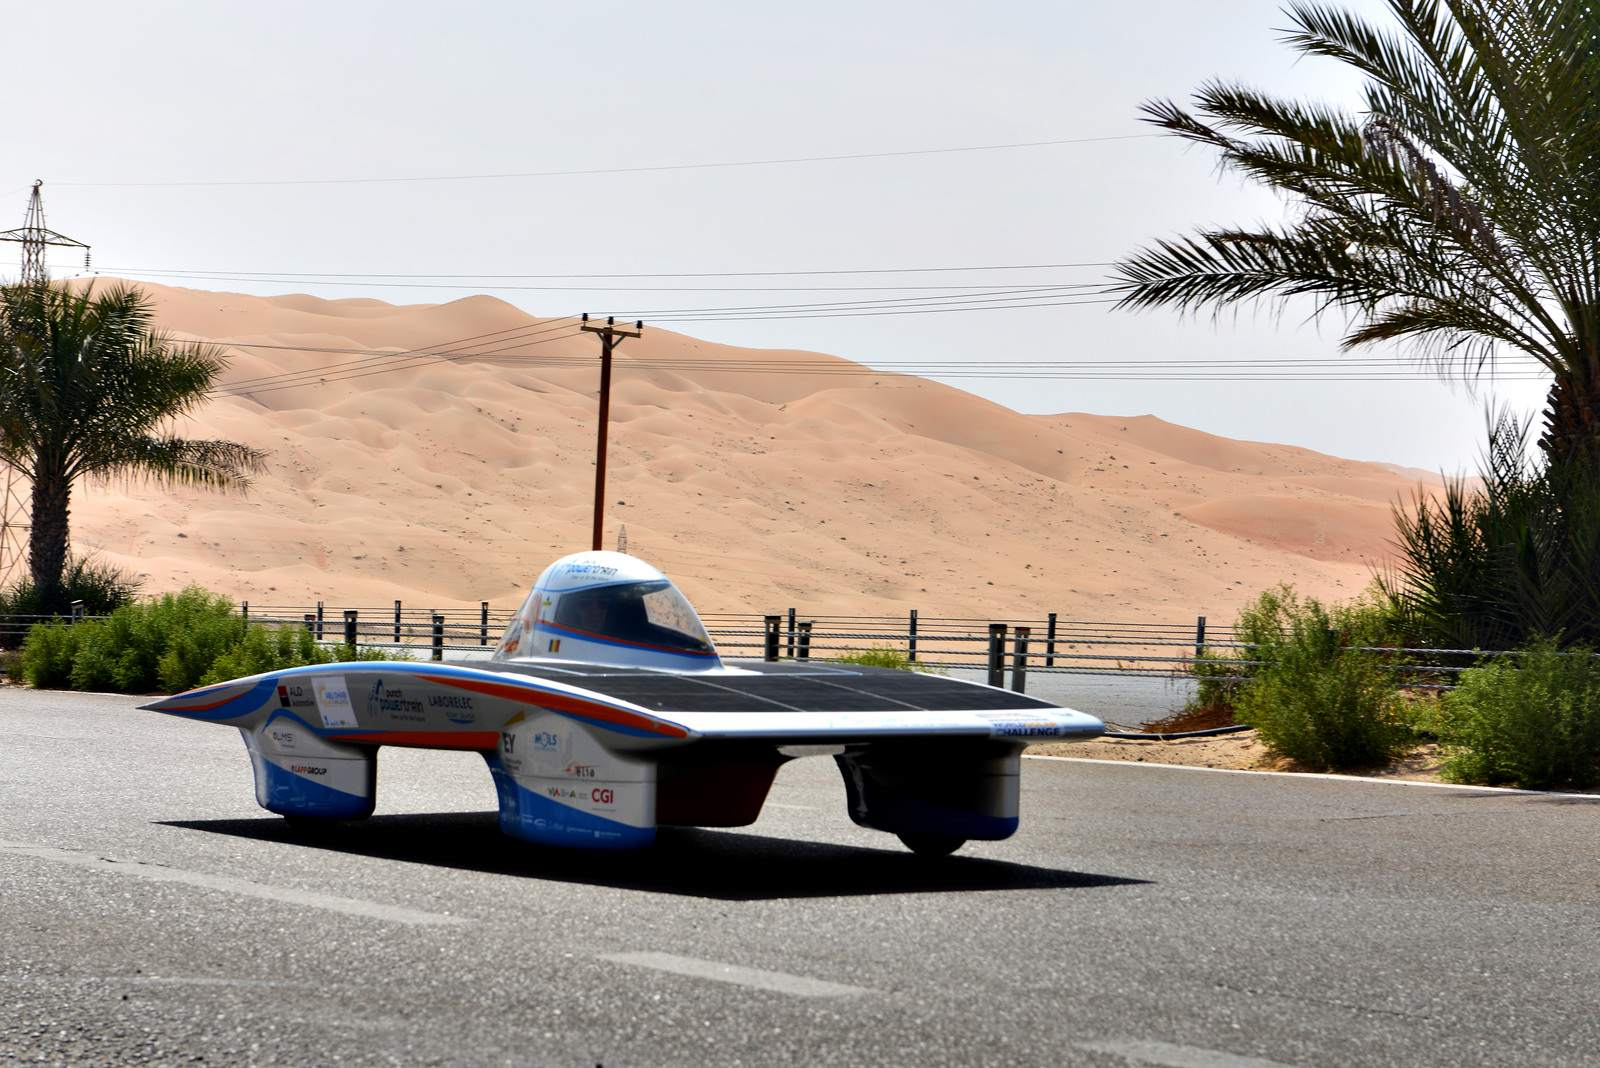 solar challenge10 Abu Dhabi Solar Challenge   Victory for Michigan University Team